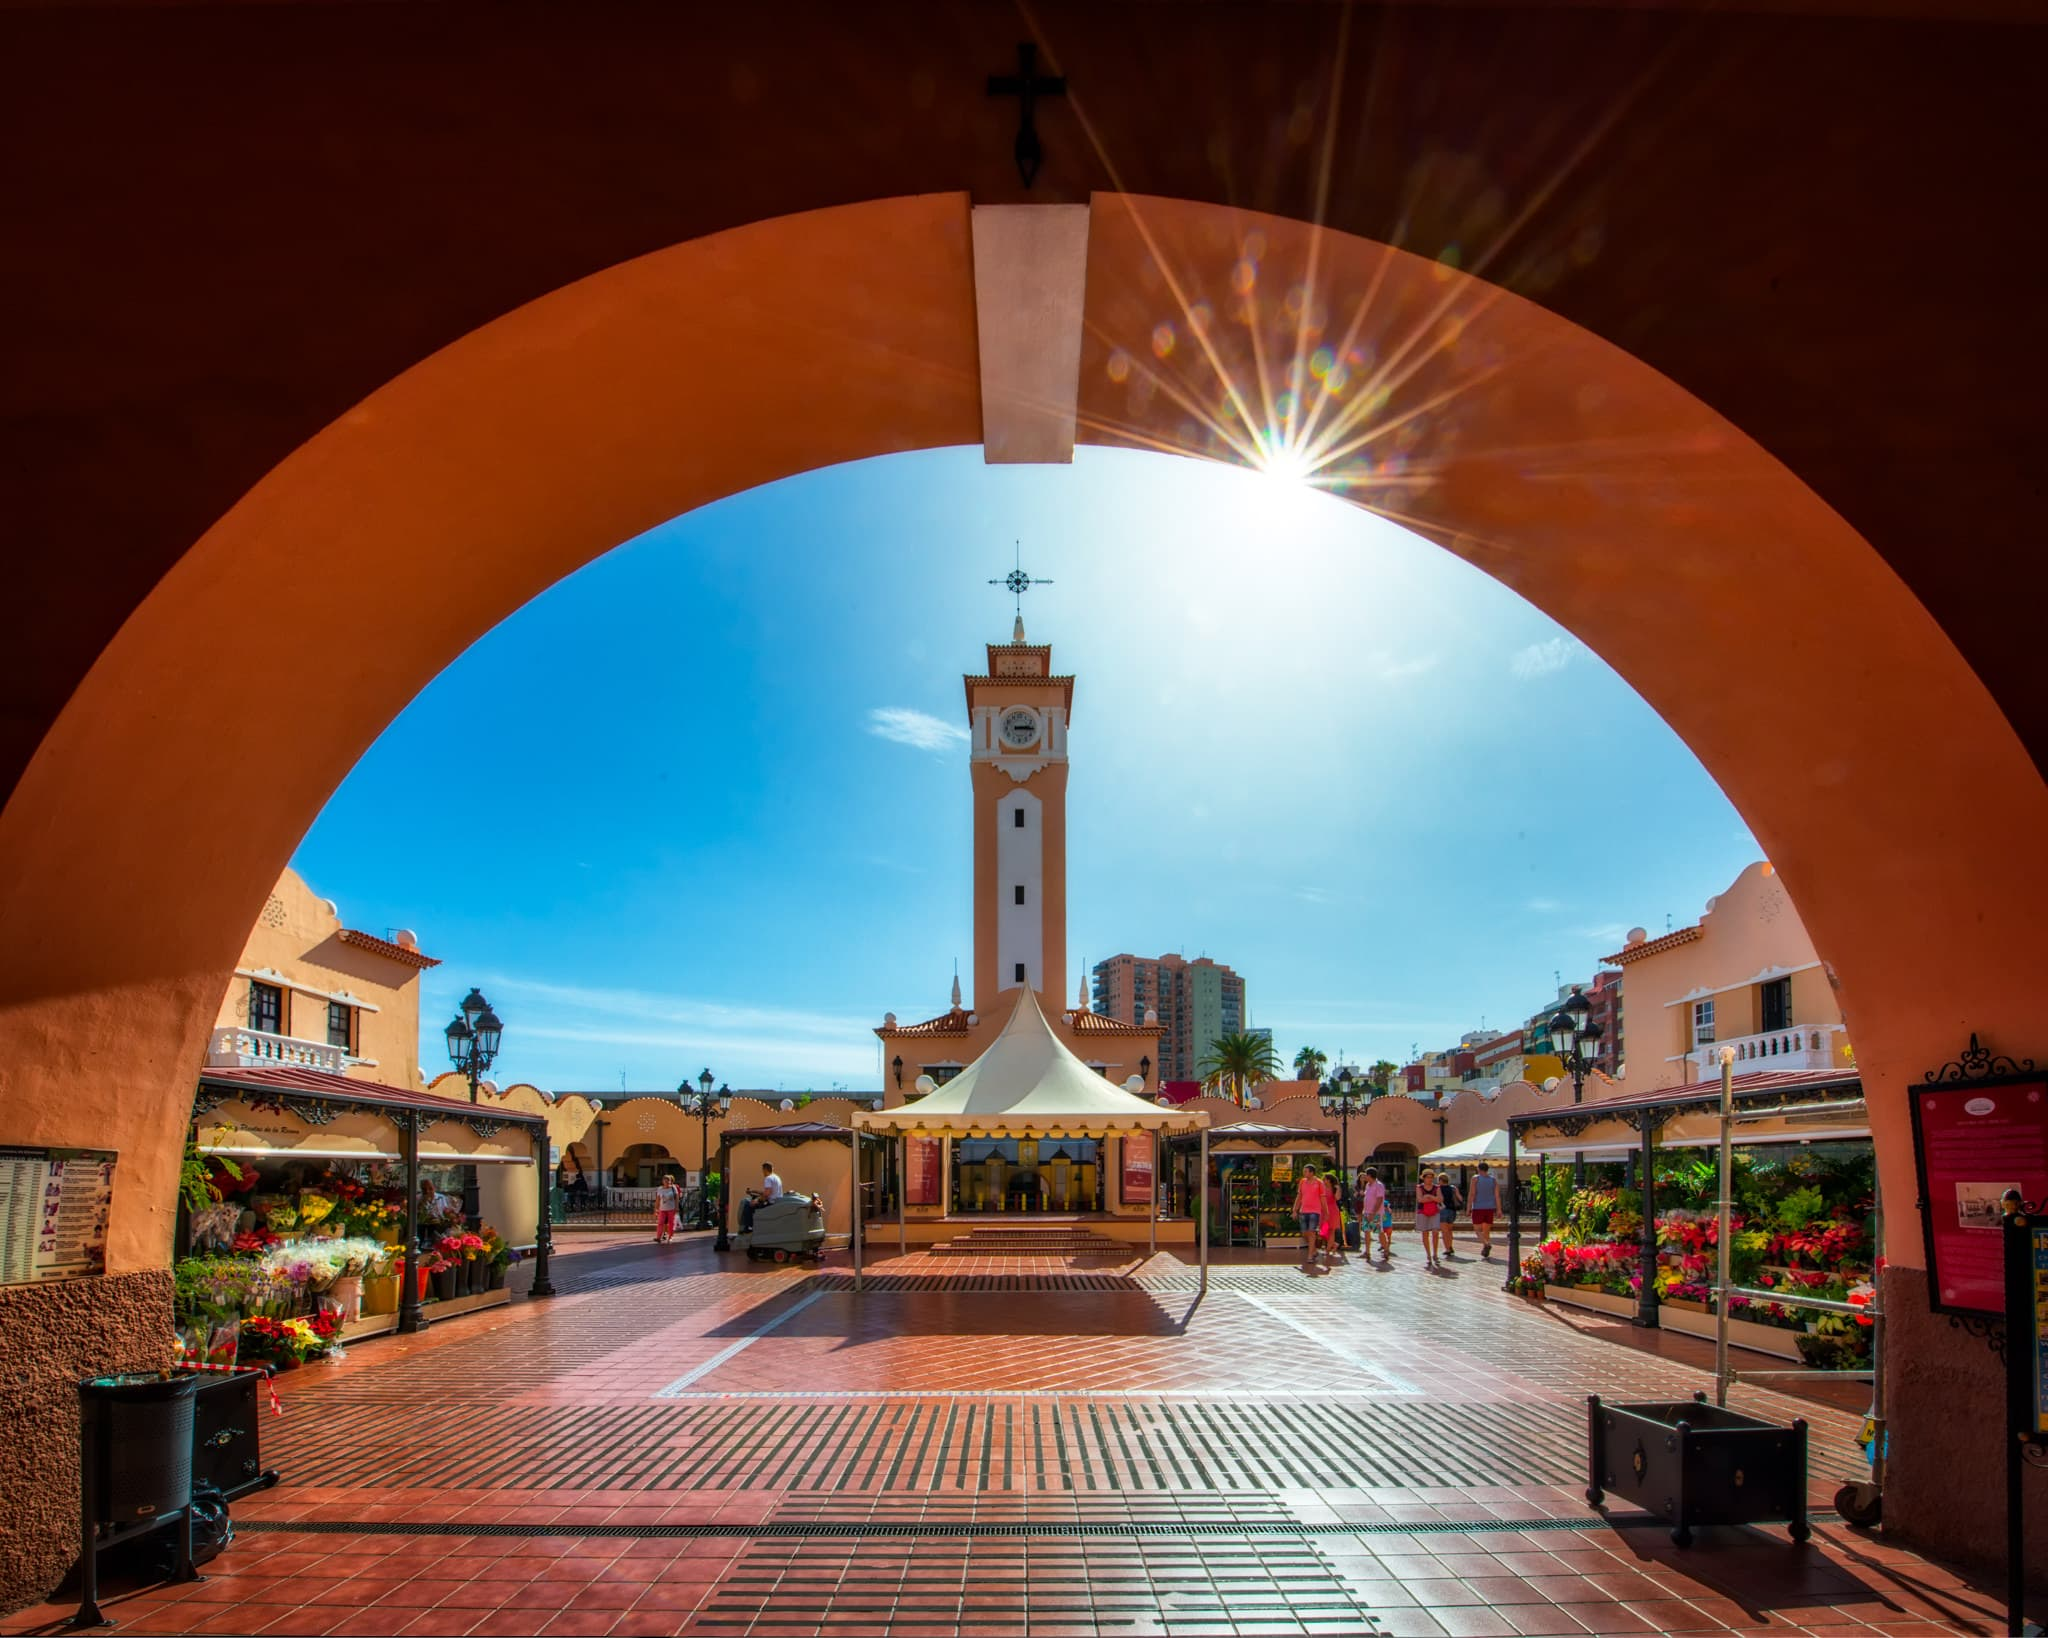 The Market of Our Lady of Africa in Santa Cruz de Tenerife (El Mercado de Nuestra Señora de África), Spain.